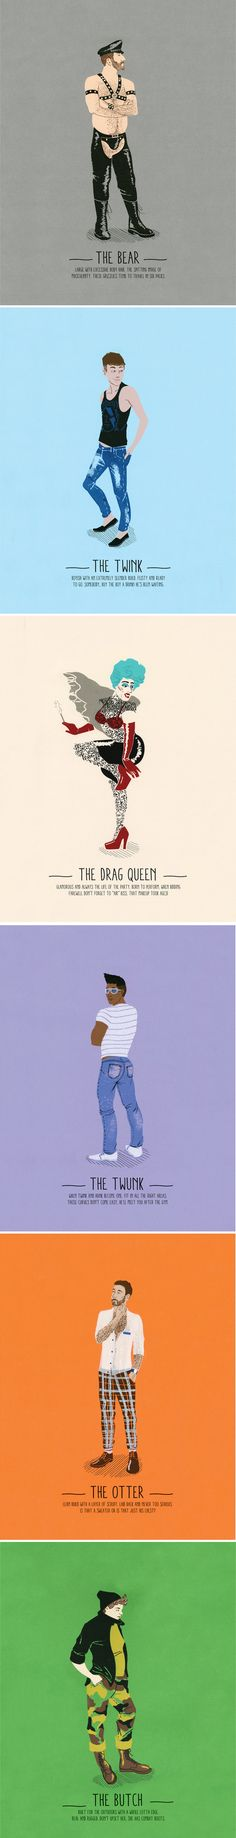 """A Guide to Gay Stereotypes"" Poster Series by James Kuczynski and Paul Tuller  http://jameskuczynski.com/Queer-Stereotype-Posters  Available on Society6: http://society6.com/paperescapade"